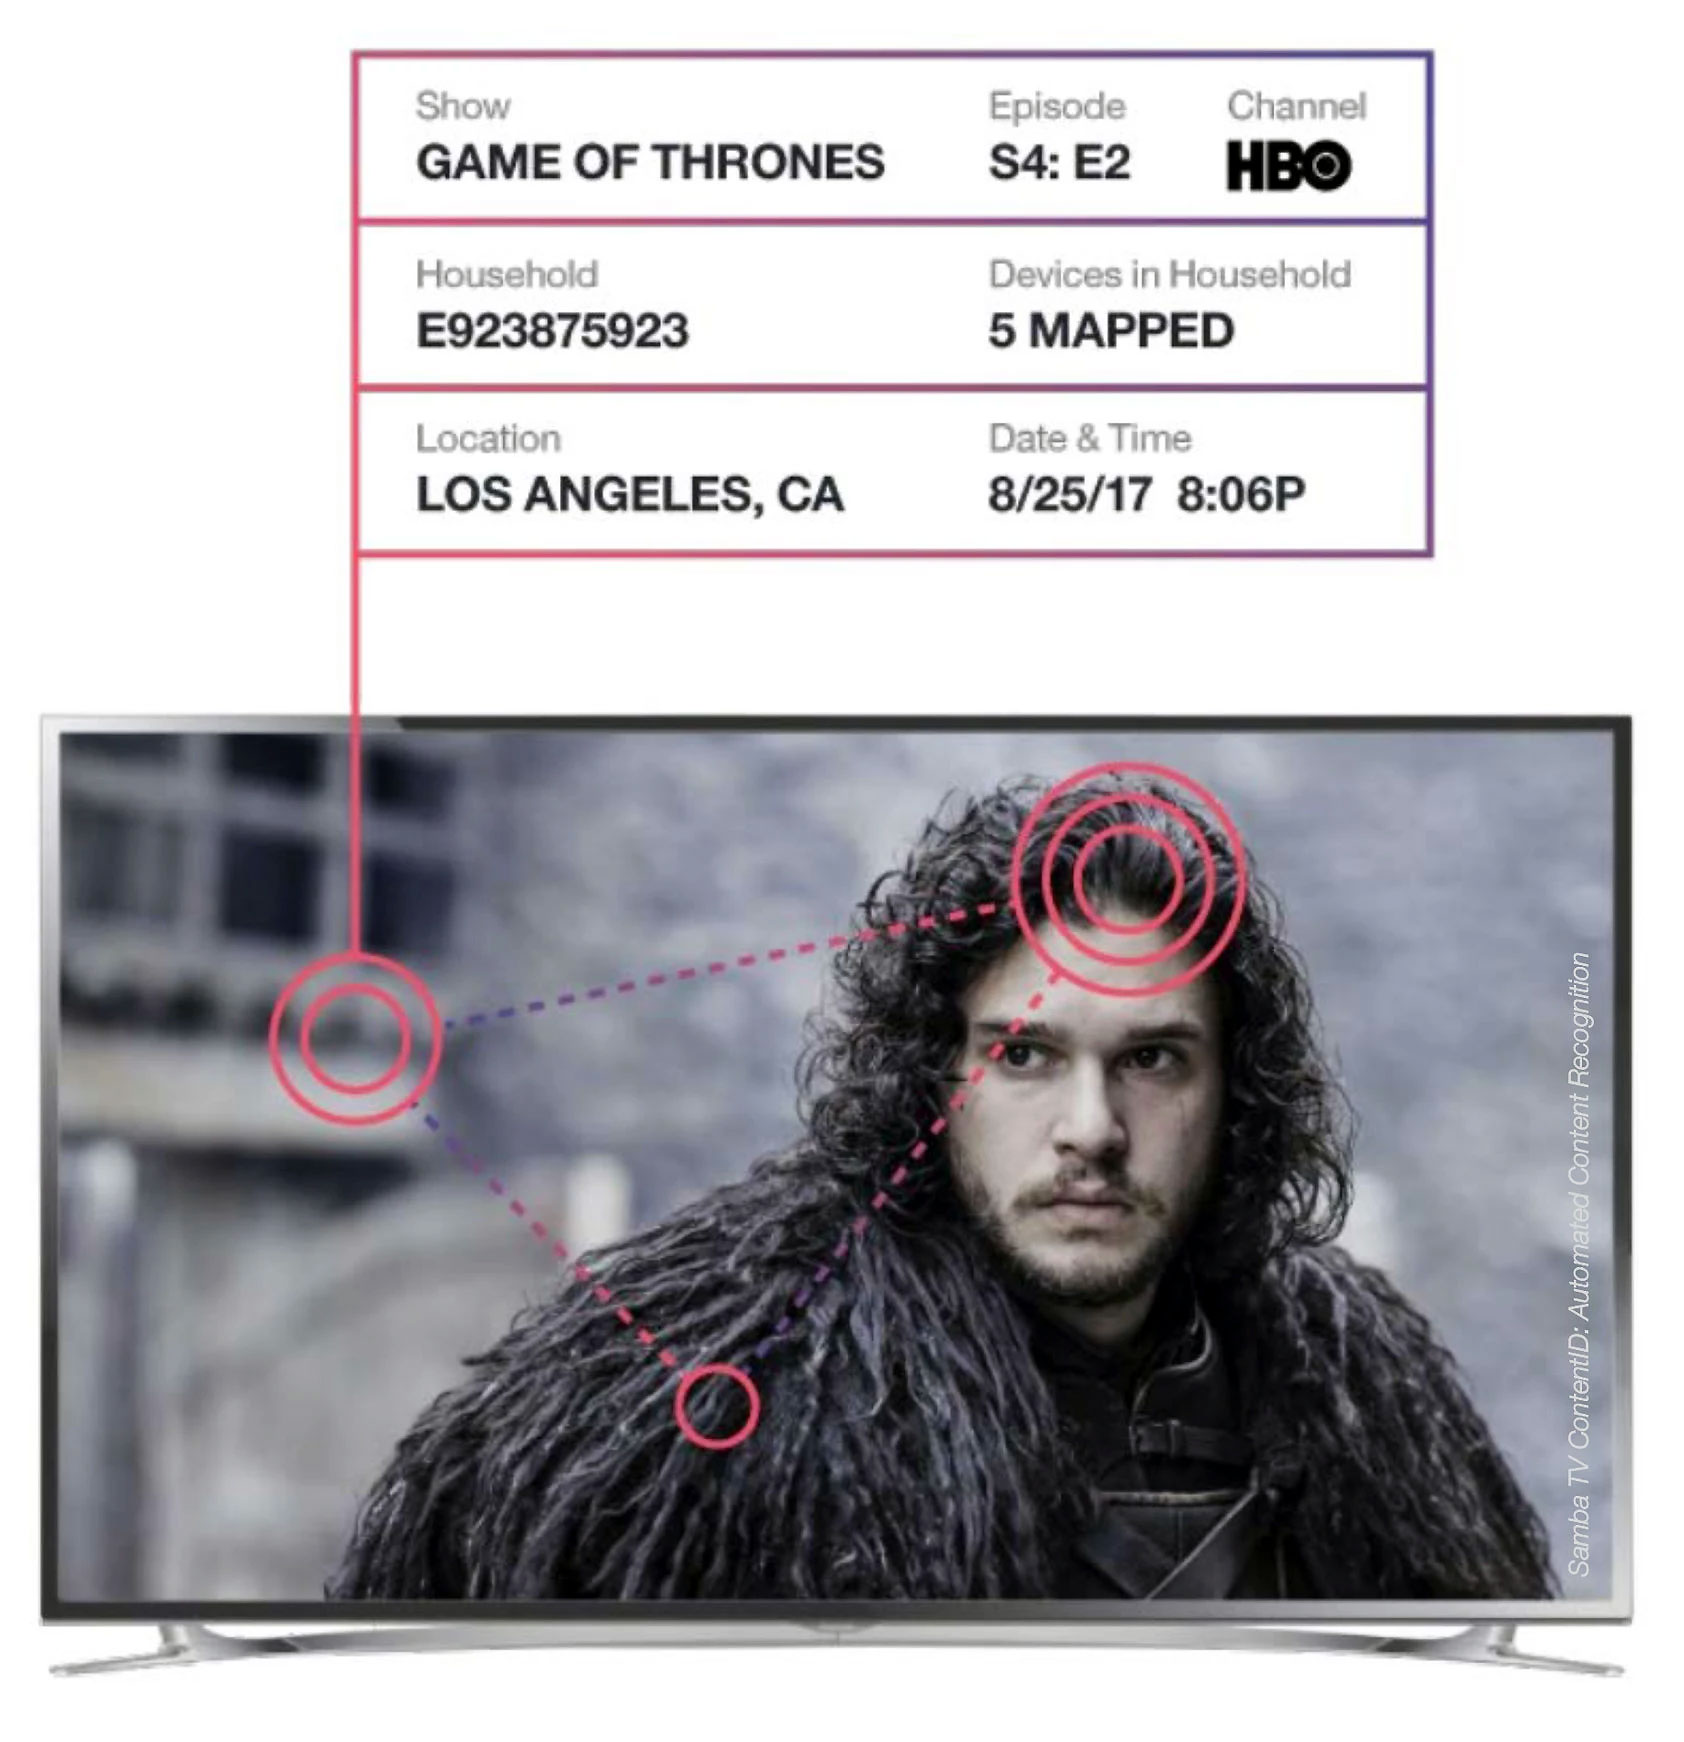 How Smart TVs can track everything you're watching